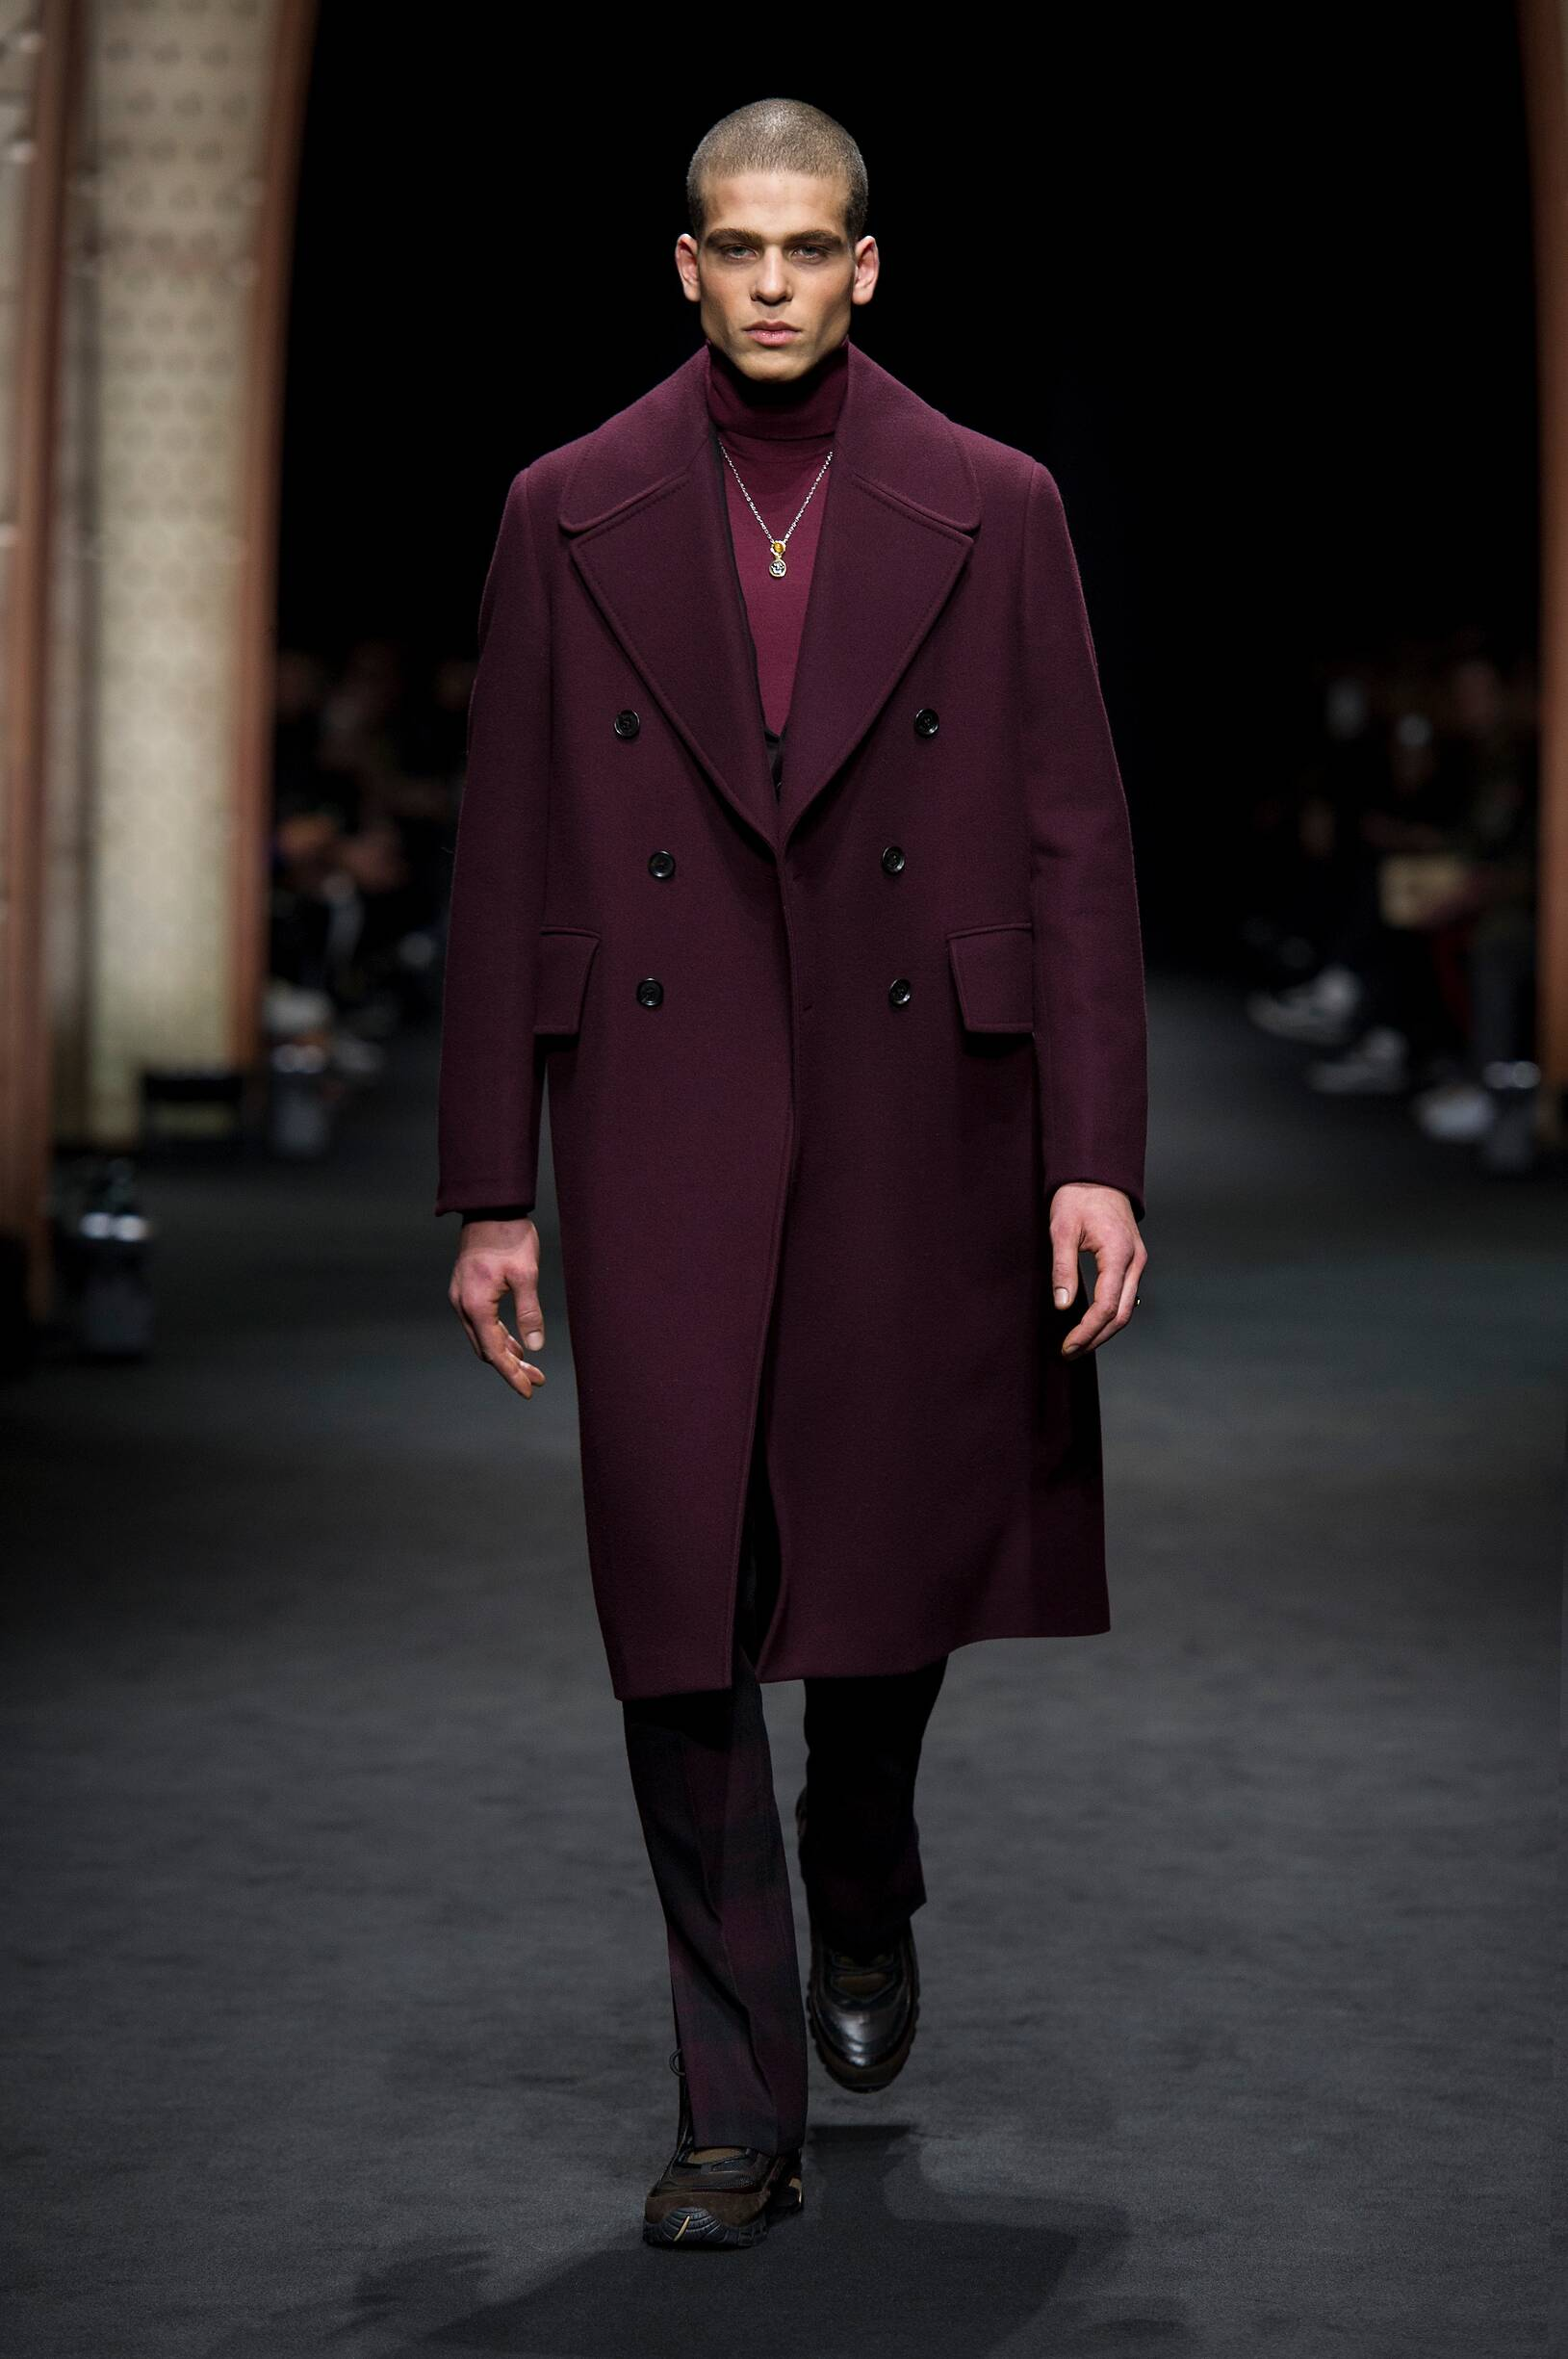 VERSACE FALL WINTER 201718 MENS COLLECTION  The Skinny Beep